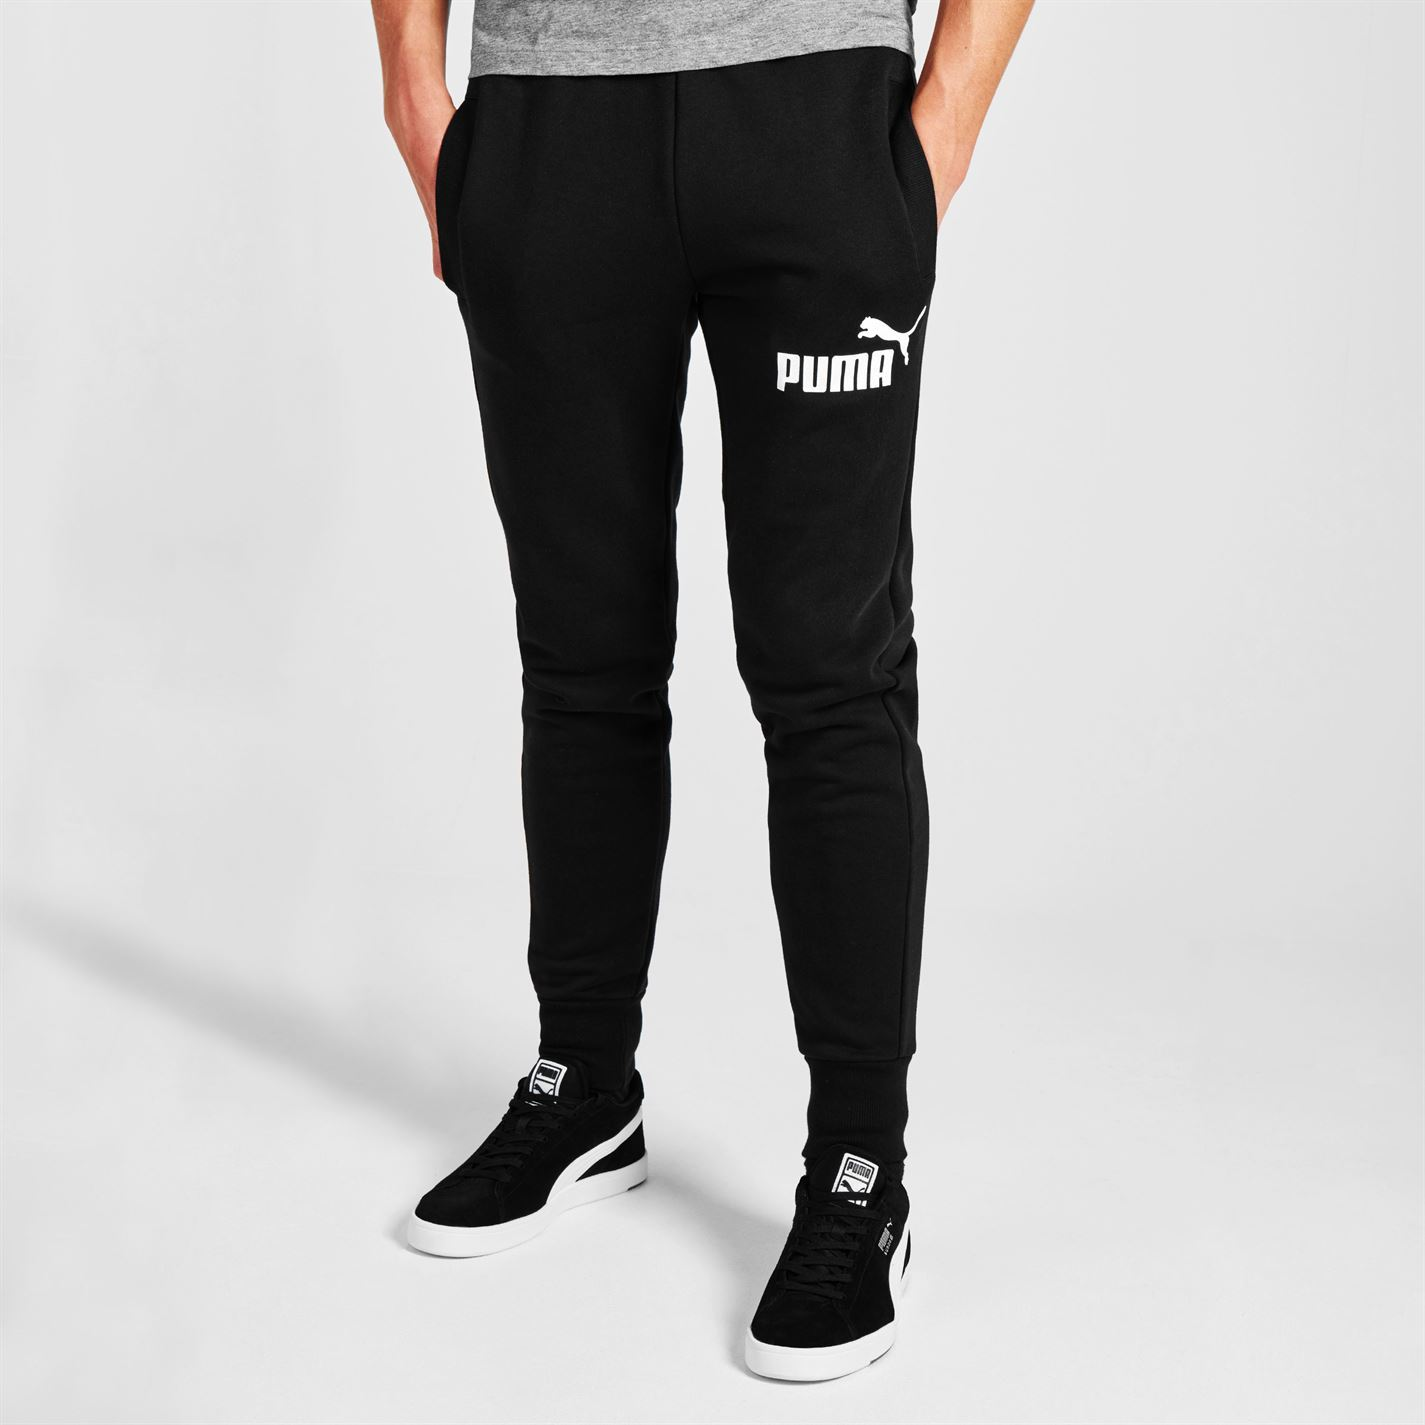 Find PUMA Evolution Men's Tapered Jogger Pants and other Mens Pants at grounwhijwgg.cf